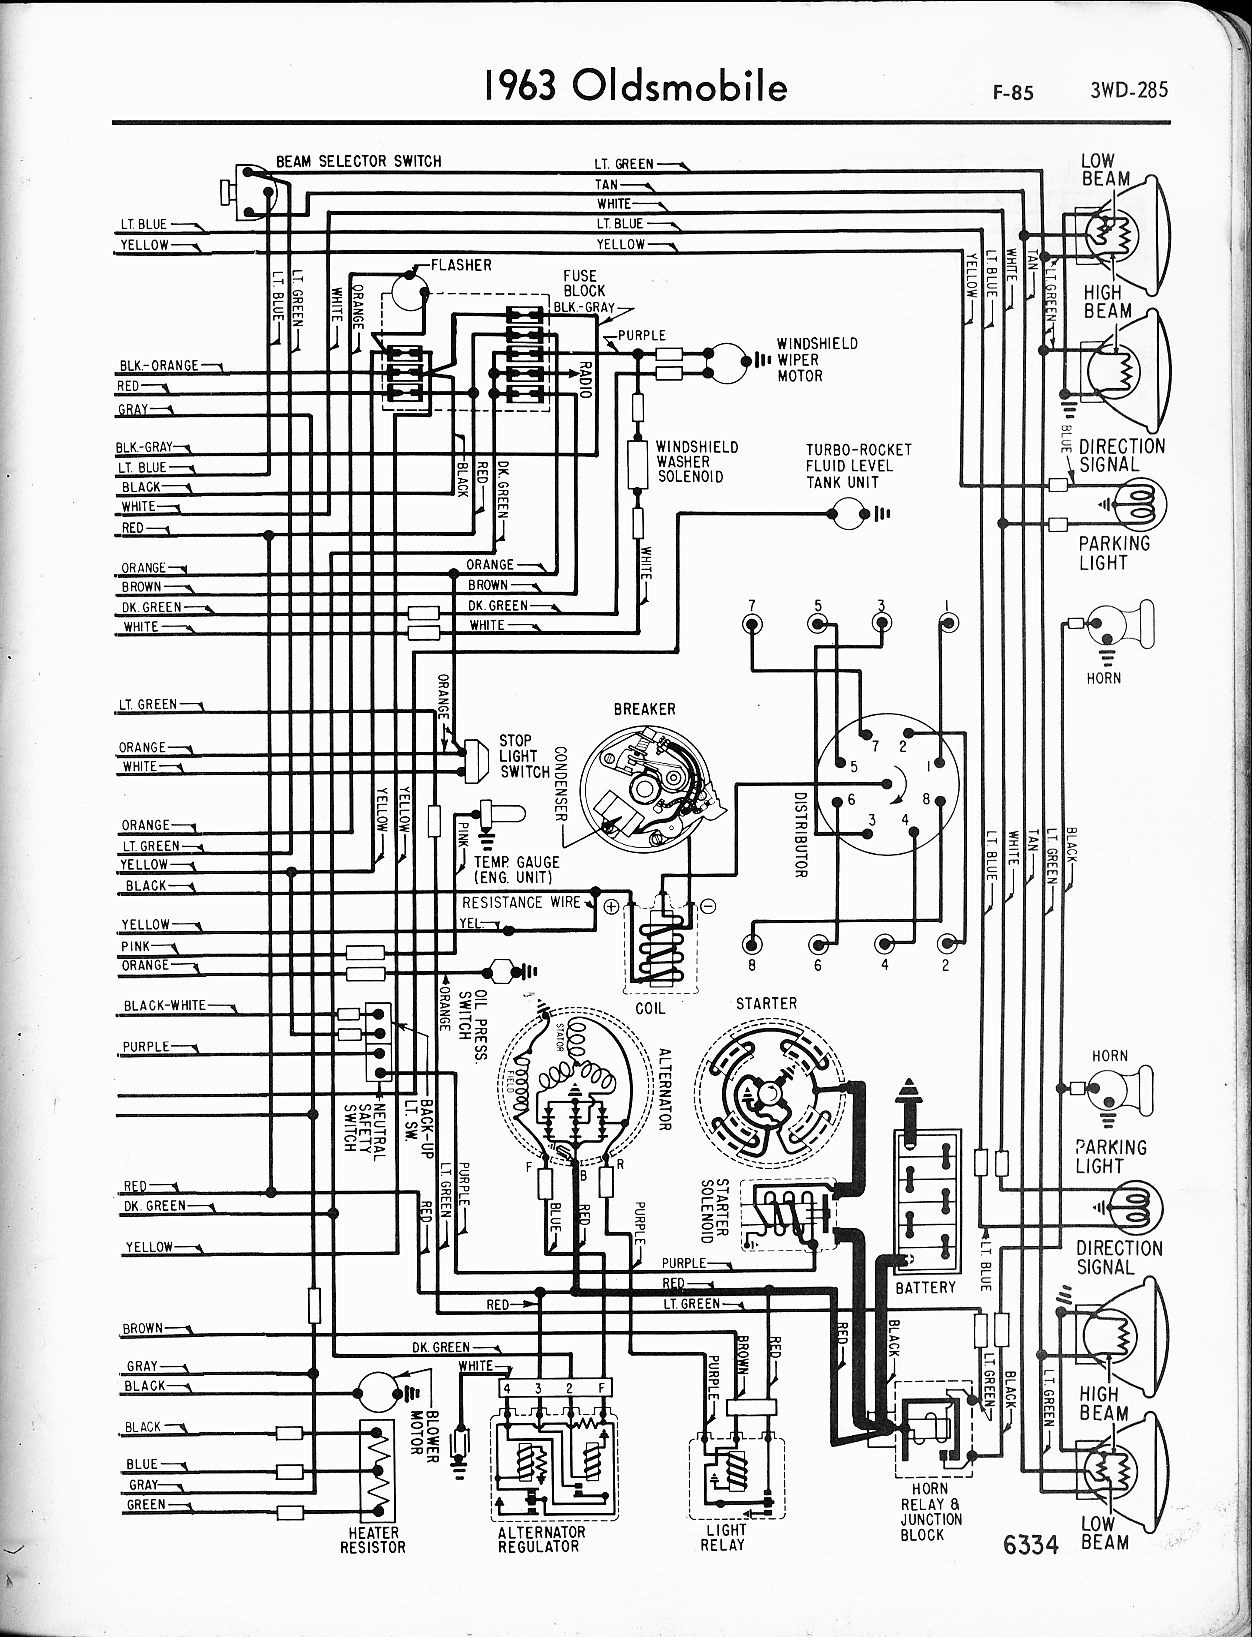 2001 pontiac grand am se engine diagram wiring diagram besides 1996 rh  detoxicrecenze com 1995 Oldsmobile